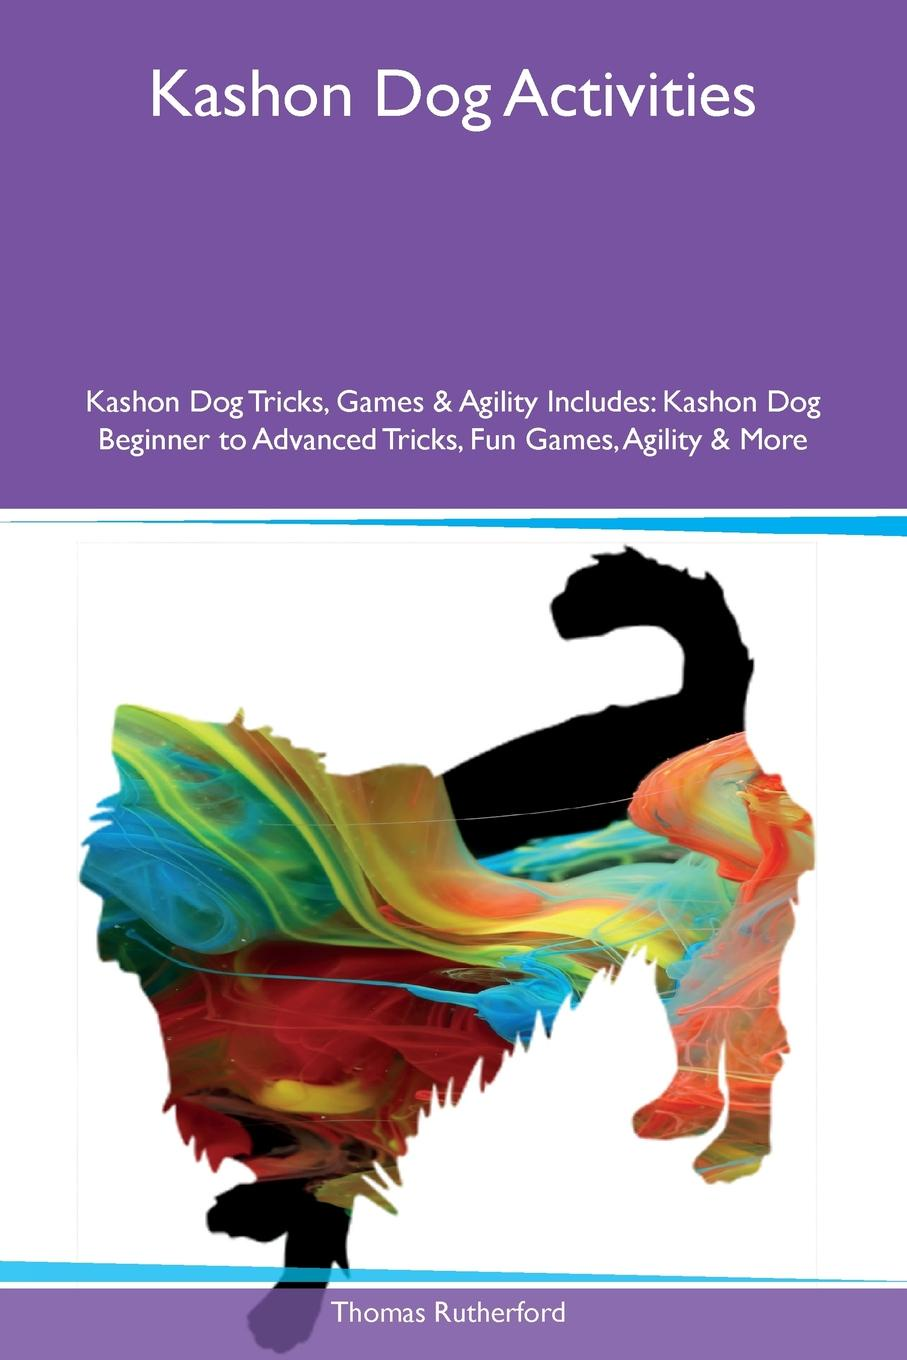 Thomas Rutherford Kashon Dog Activities Tricks, Games & Agility Includes. Beginner to Advanced Fun Games, More